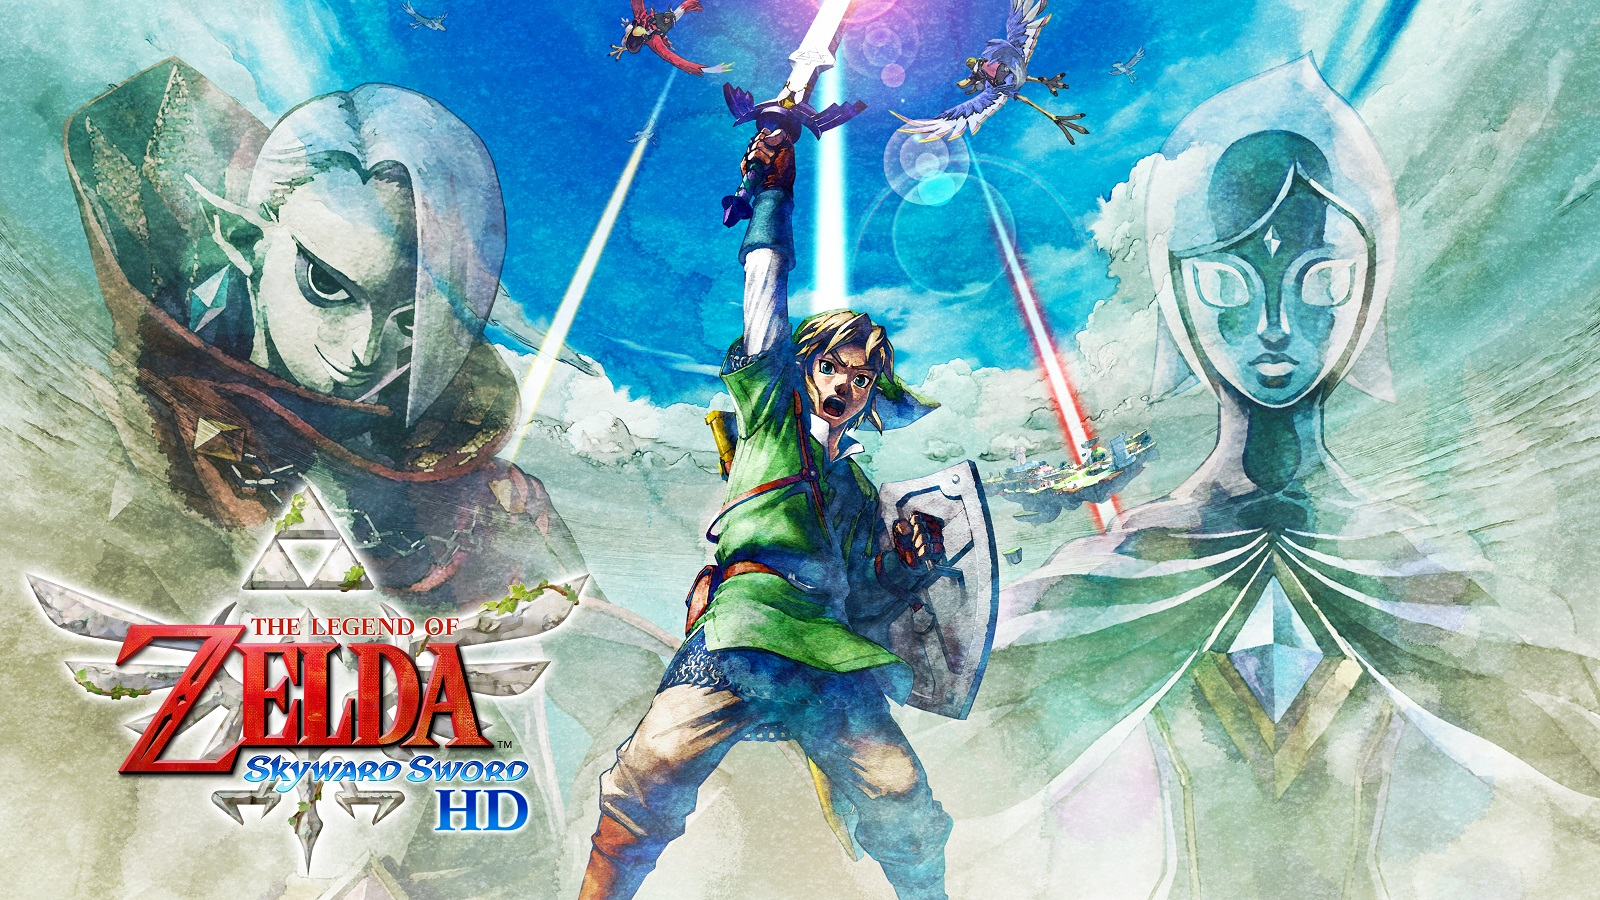 The Legend of Zelda: Skyward Sword всё-таки выйдет на Switch в формате переиздания